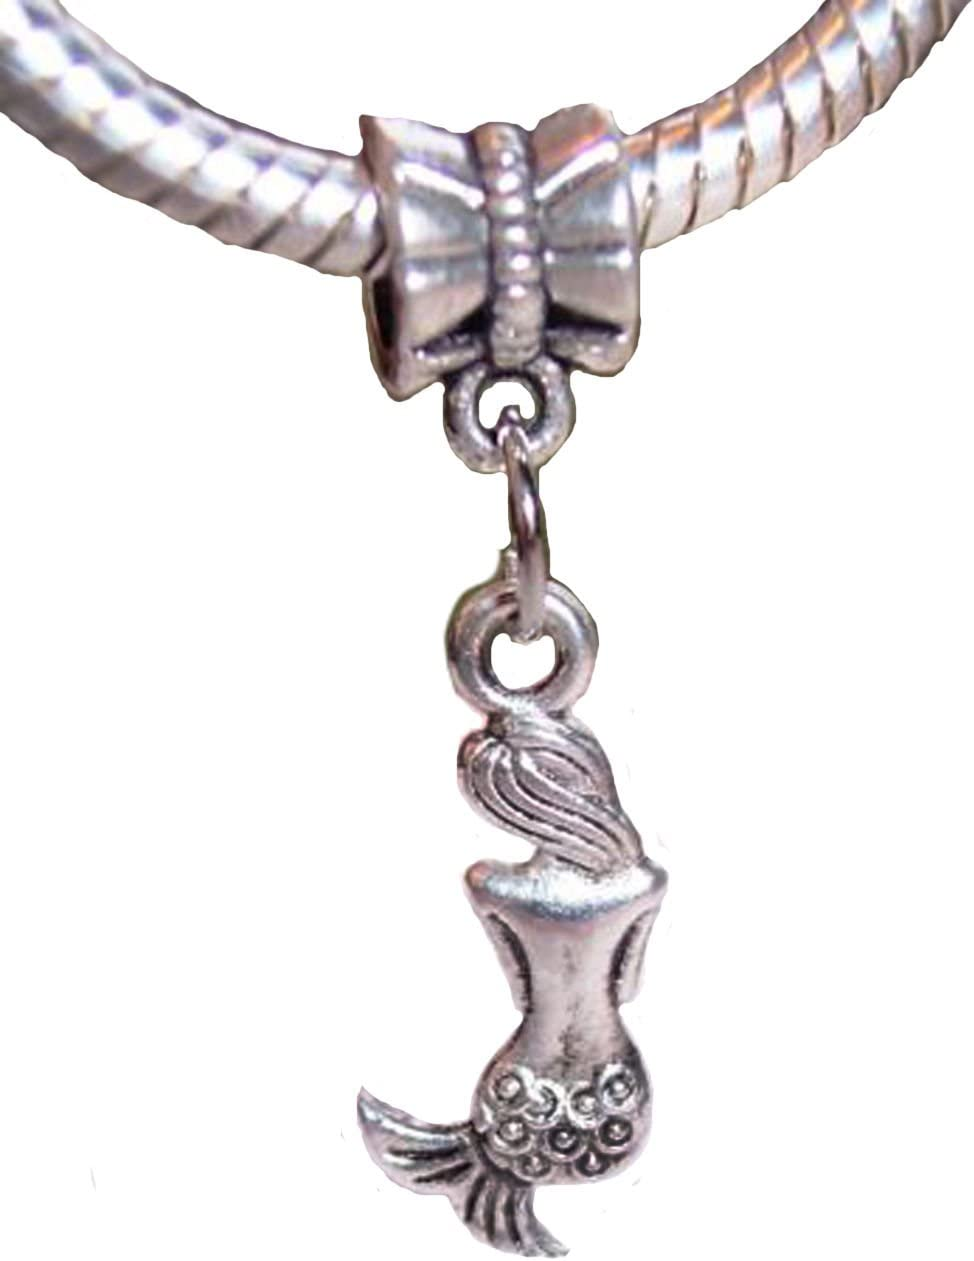 Mermaid Back Ocean Siren Legend Beach Dangle Charm for European Bead Bracelets